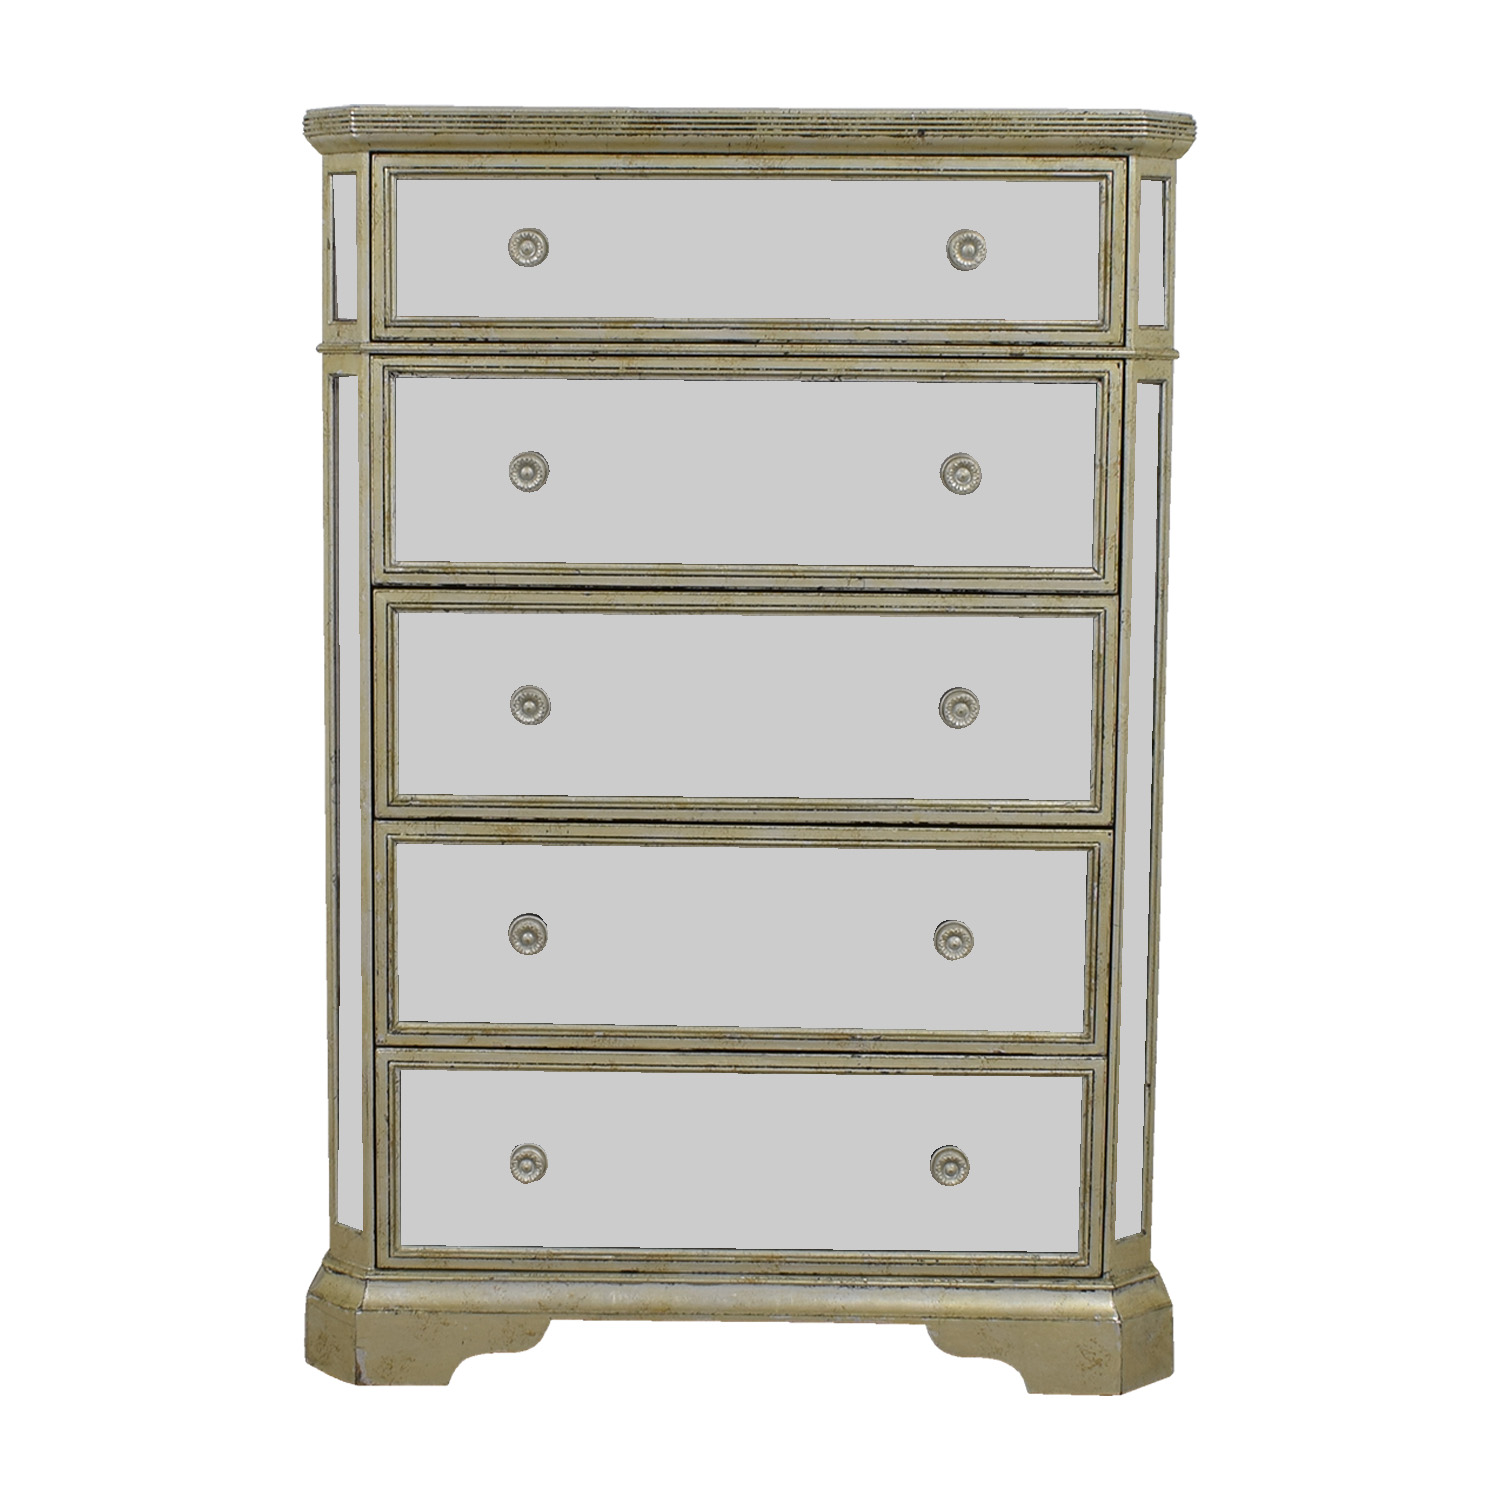 Z Galleries Z Galleries Borghese Five-Drawer Mirrored Chest